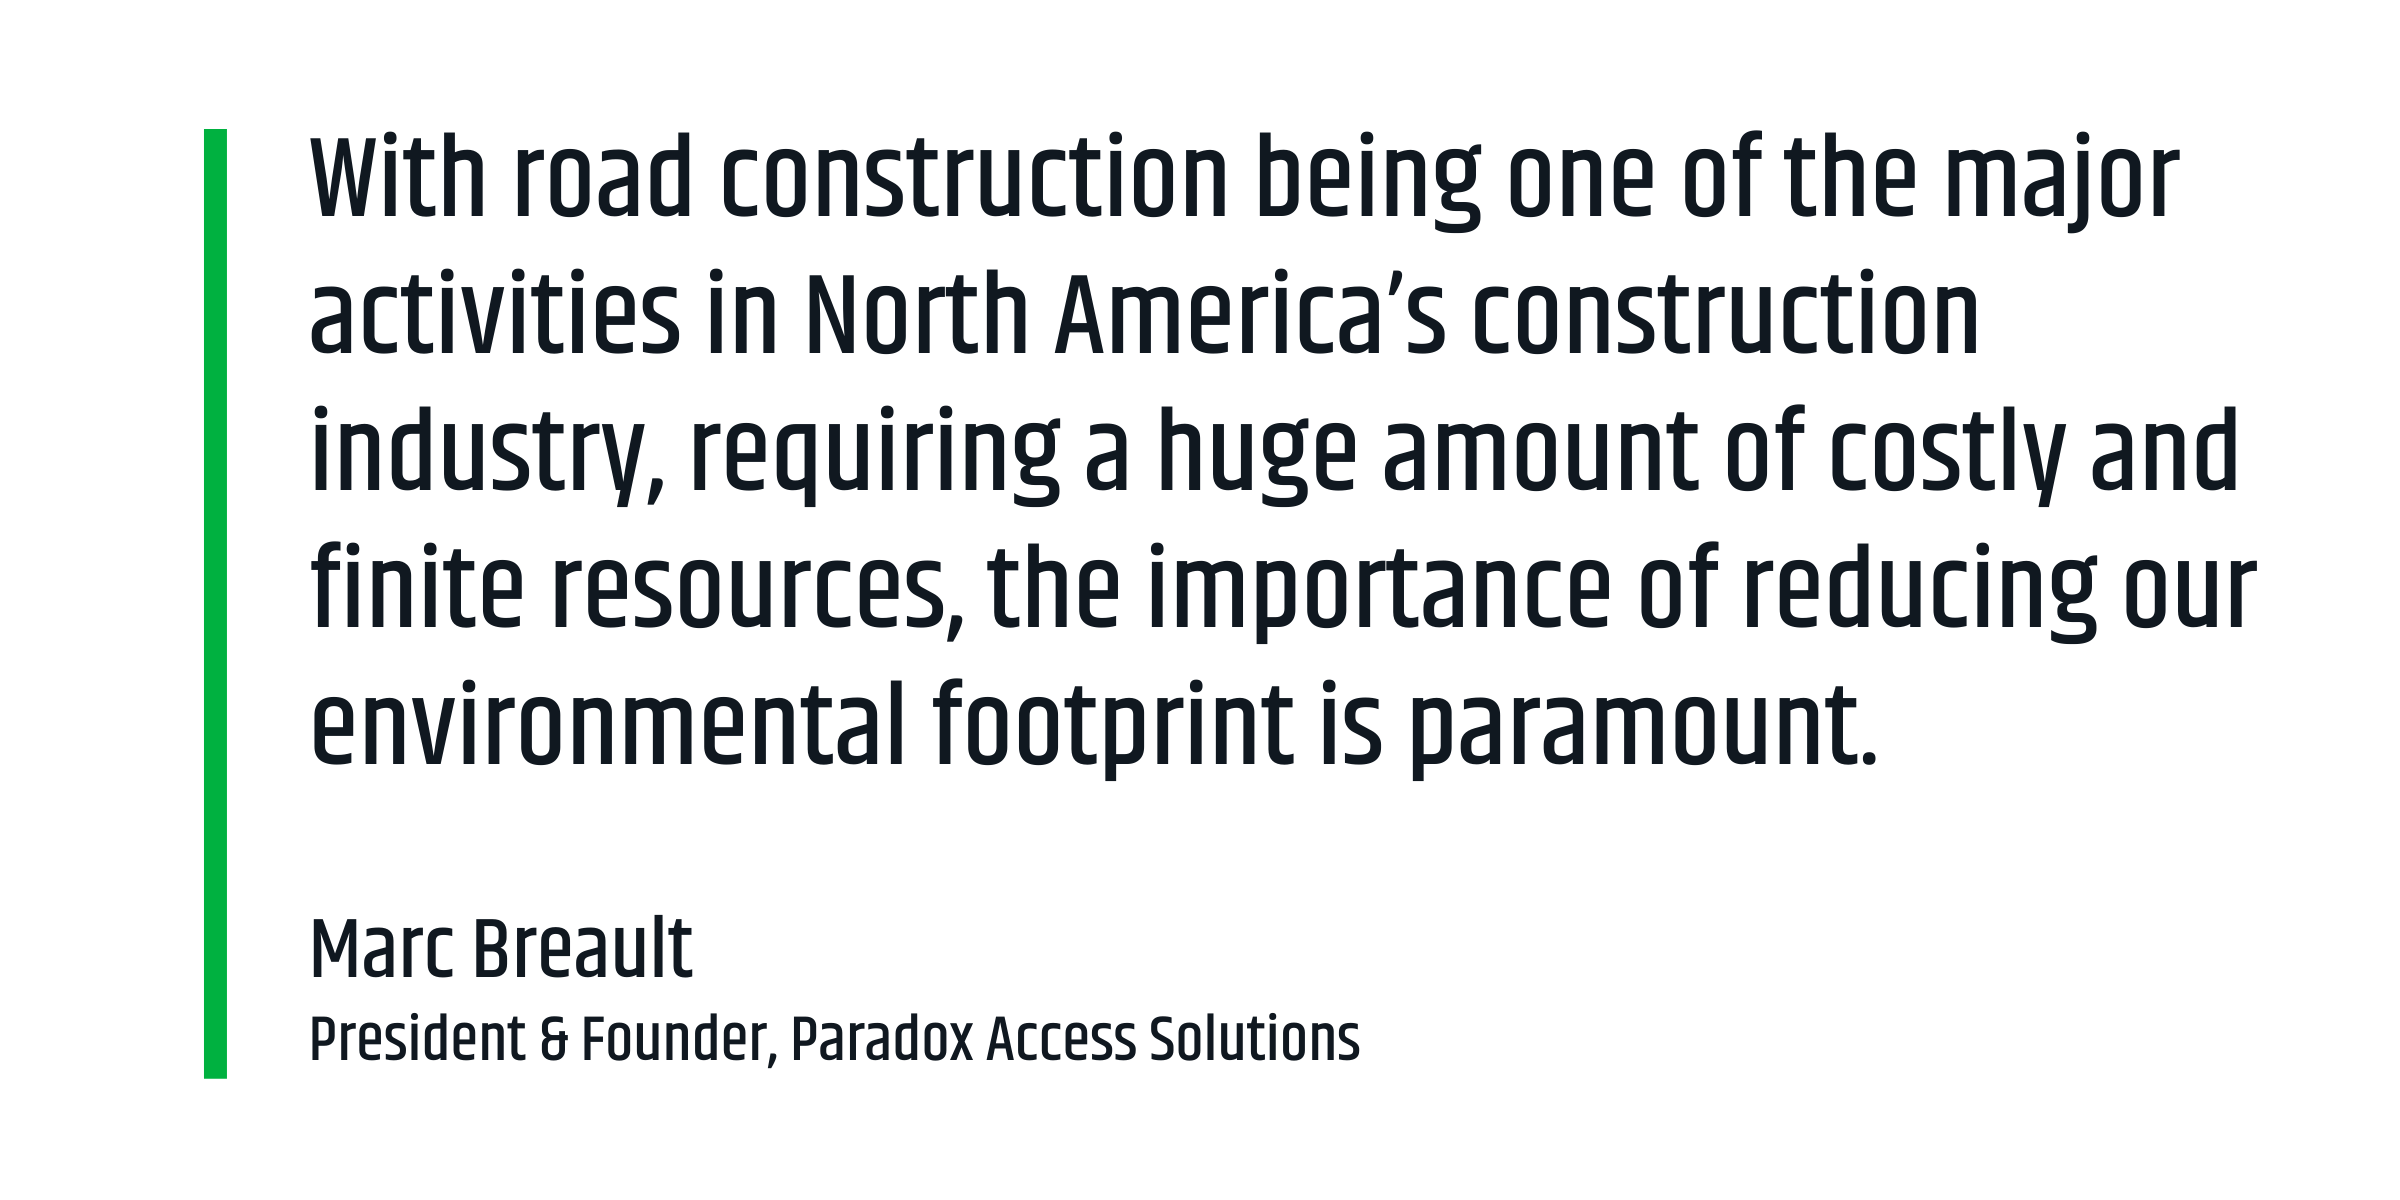 """With road construction being one of the major activities in North America's construction industry, requiring a huge amount of costly and finite resources, the environmental footprint—and the importance of reducing that footprint—is paramount."" Marc Breault, President, Paradox Access Solutions"